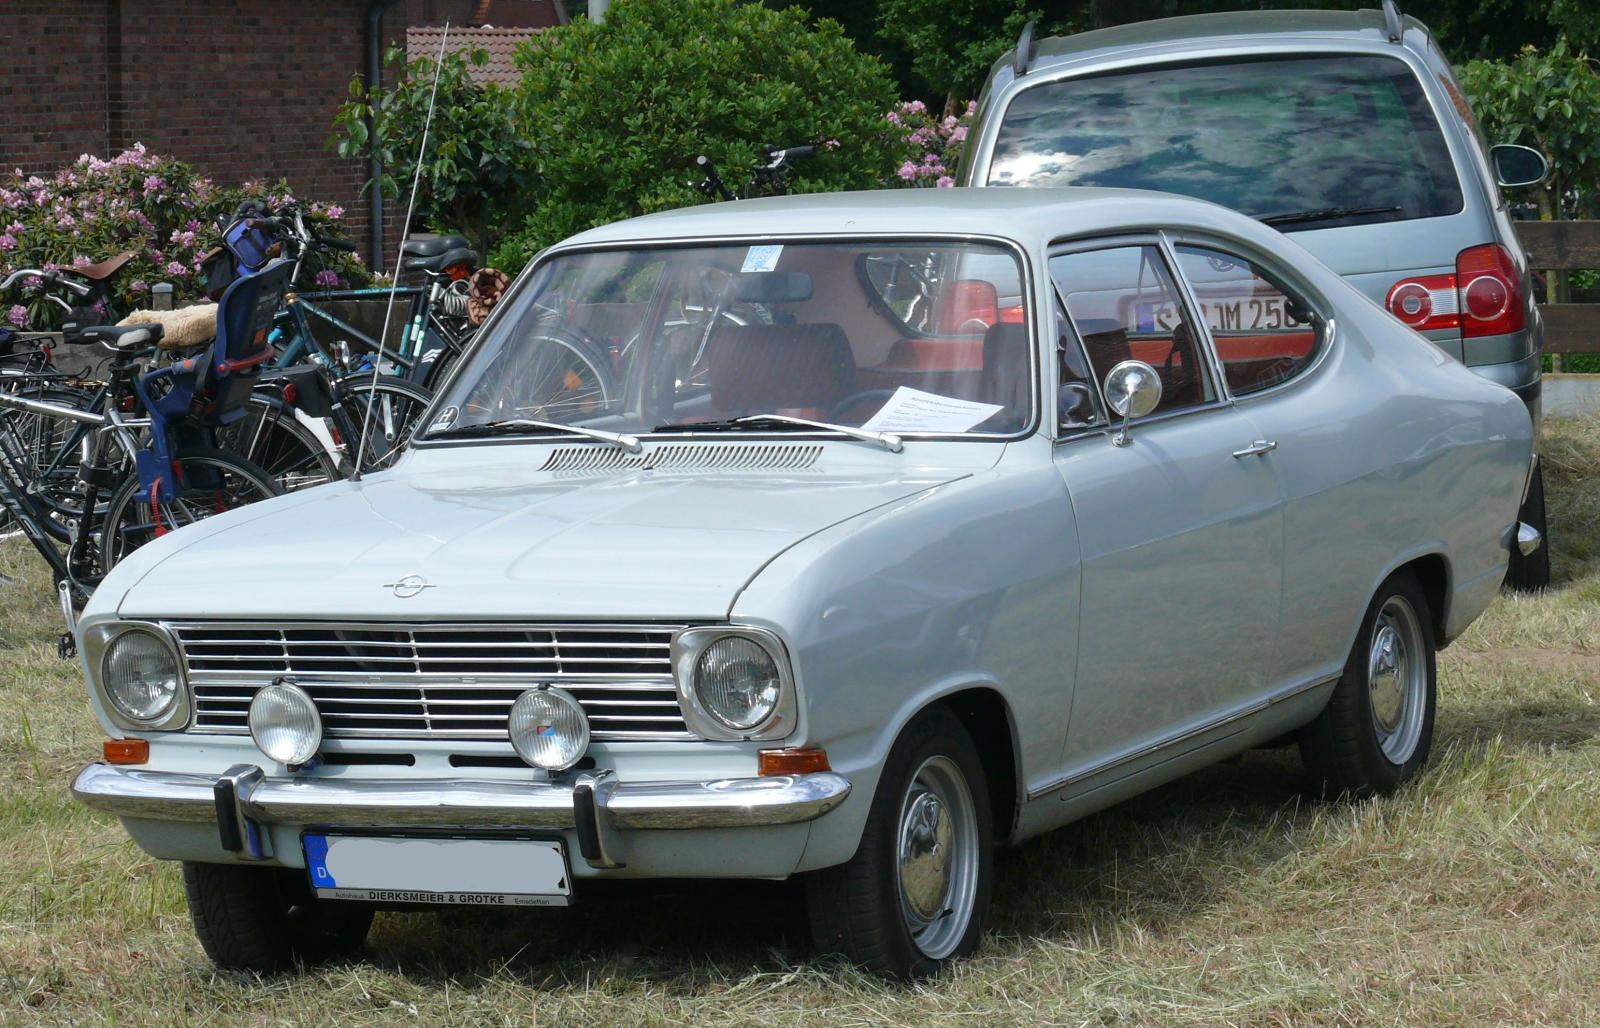 Opel Kadett B Coupe 1971 grey vl | Flickr - Photo Sharing!